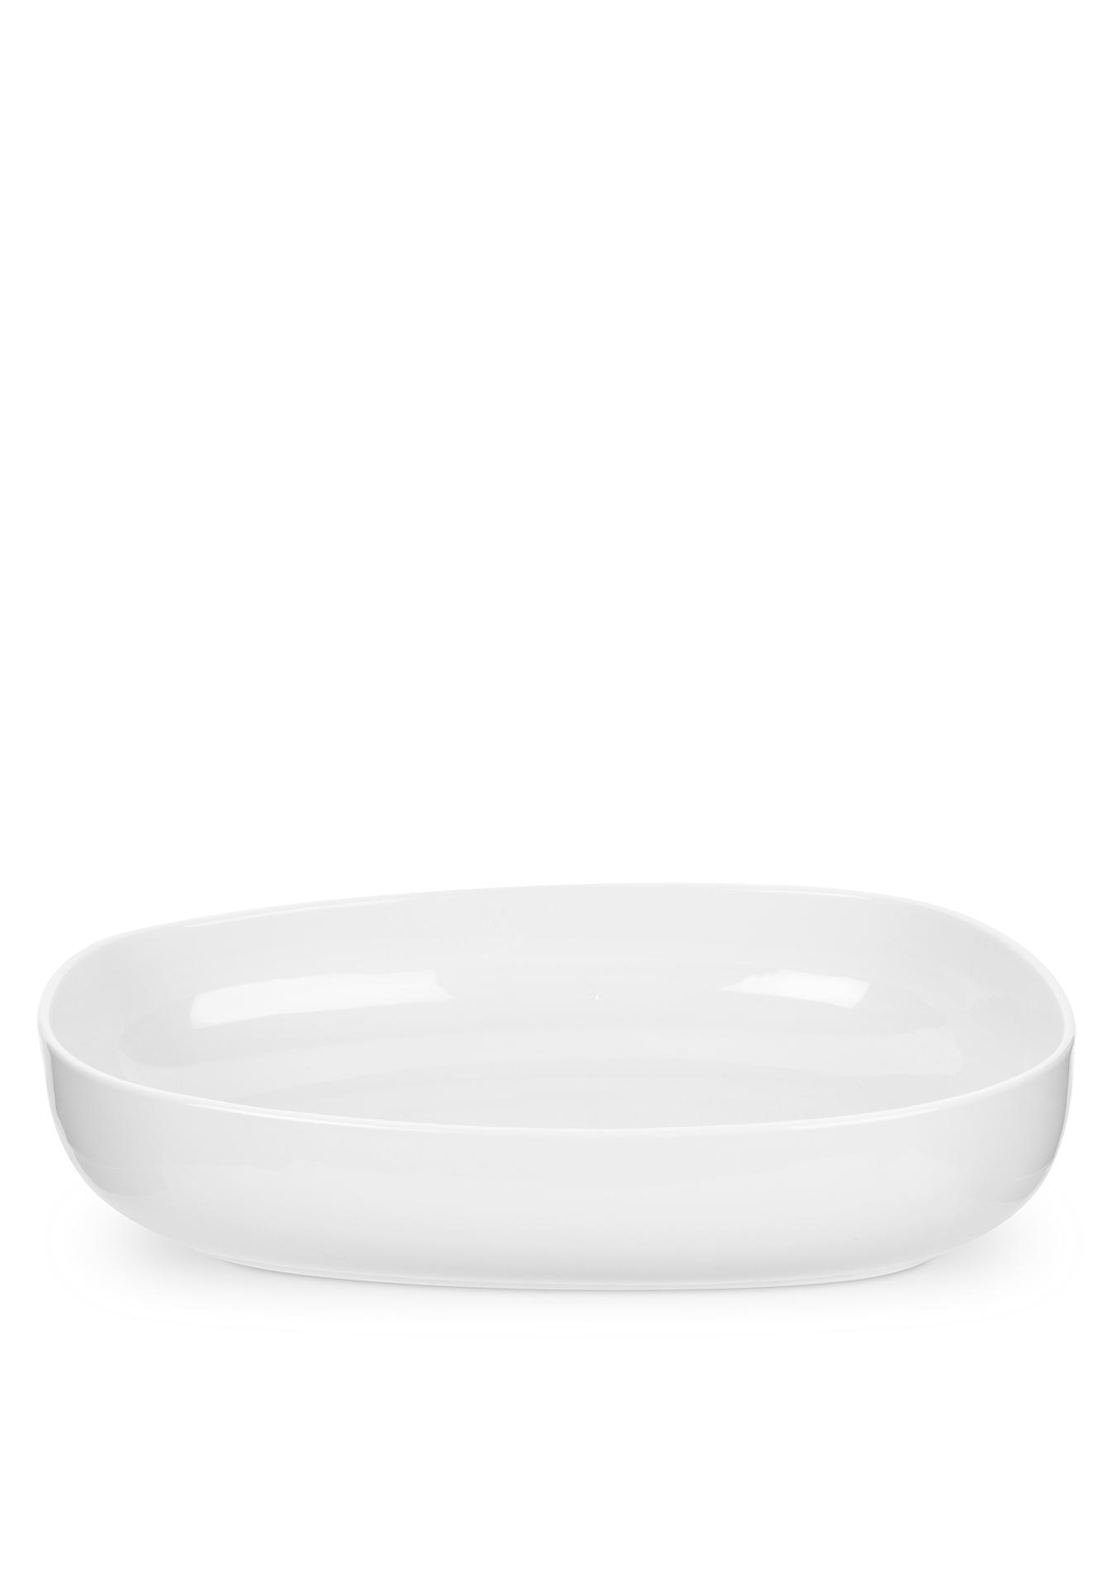 Portmeirion Porcelain Roasting Dish, White